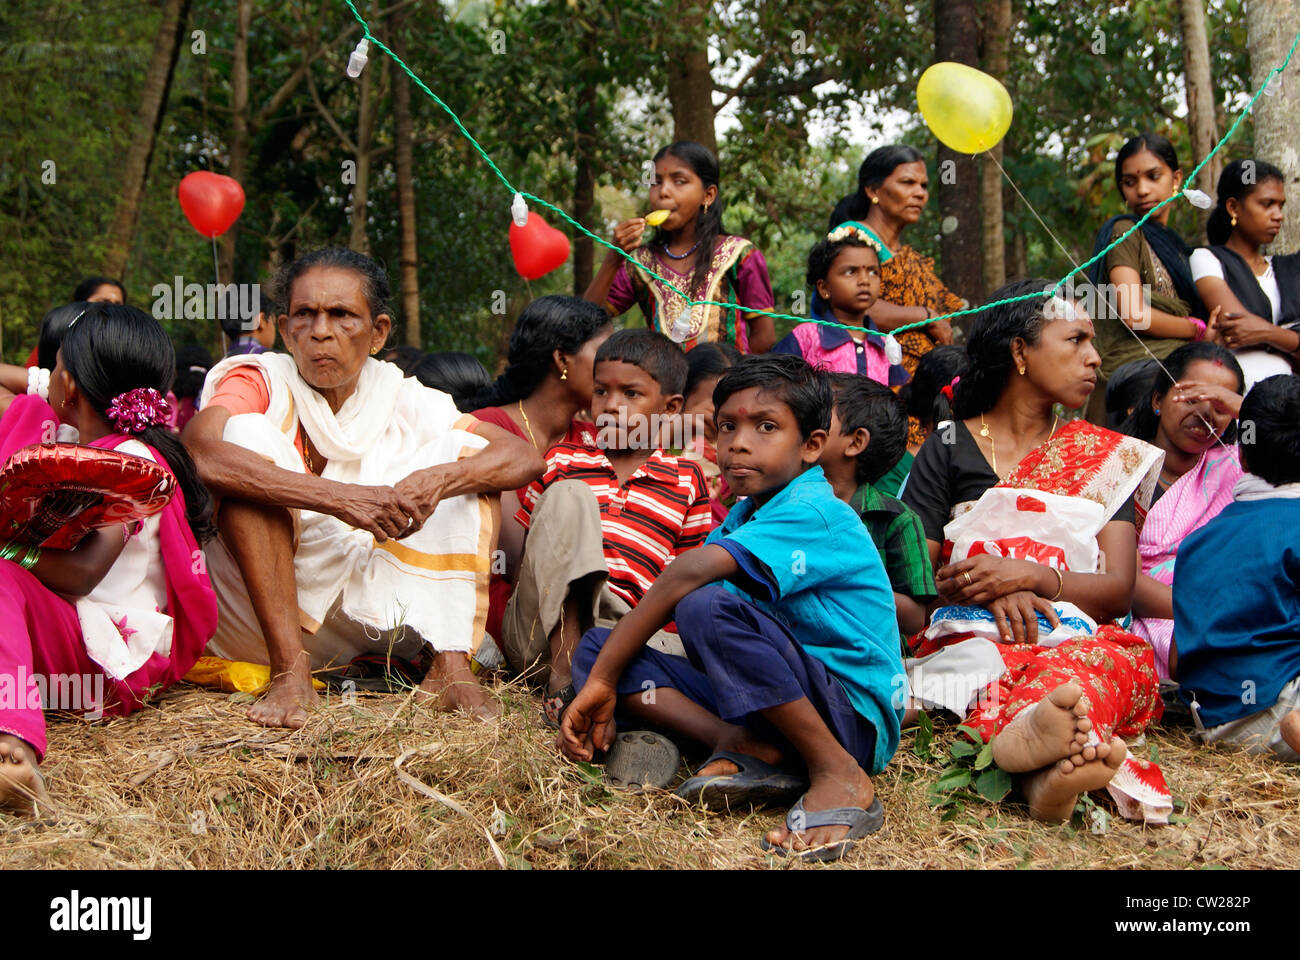 Native Peoples including womens and Children gathered around the Temple premises to watch the Gajamela Festival - Stock Image